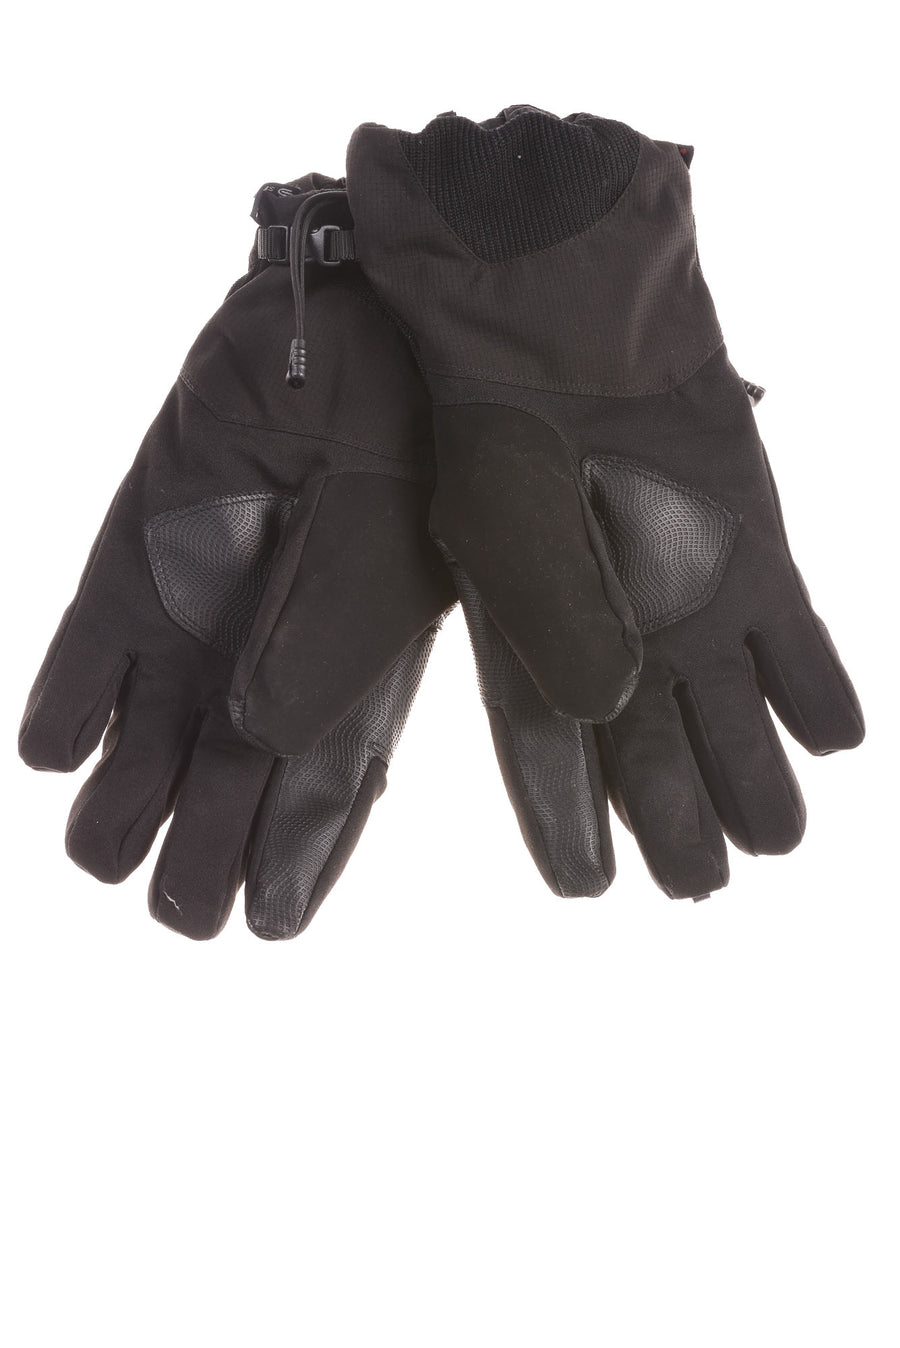 Men's Gloves By Head